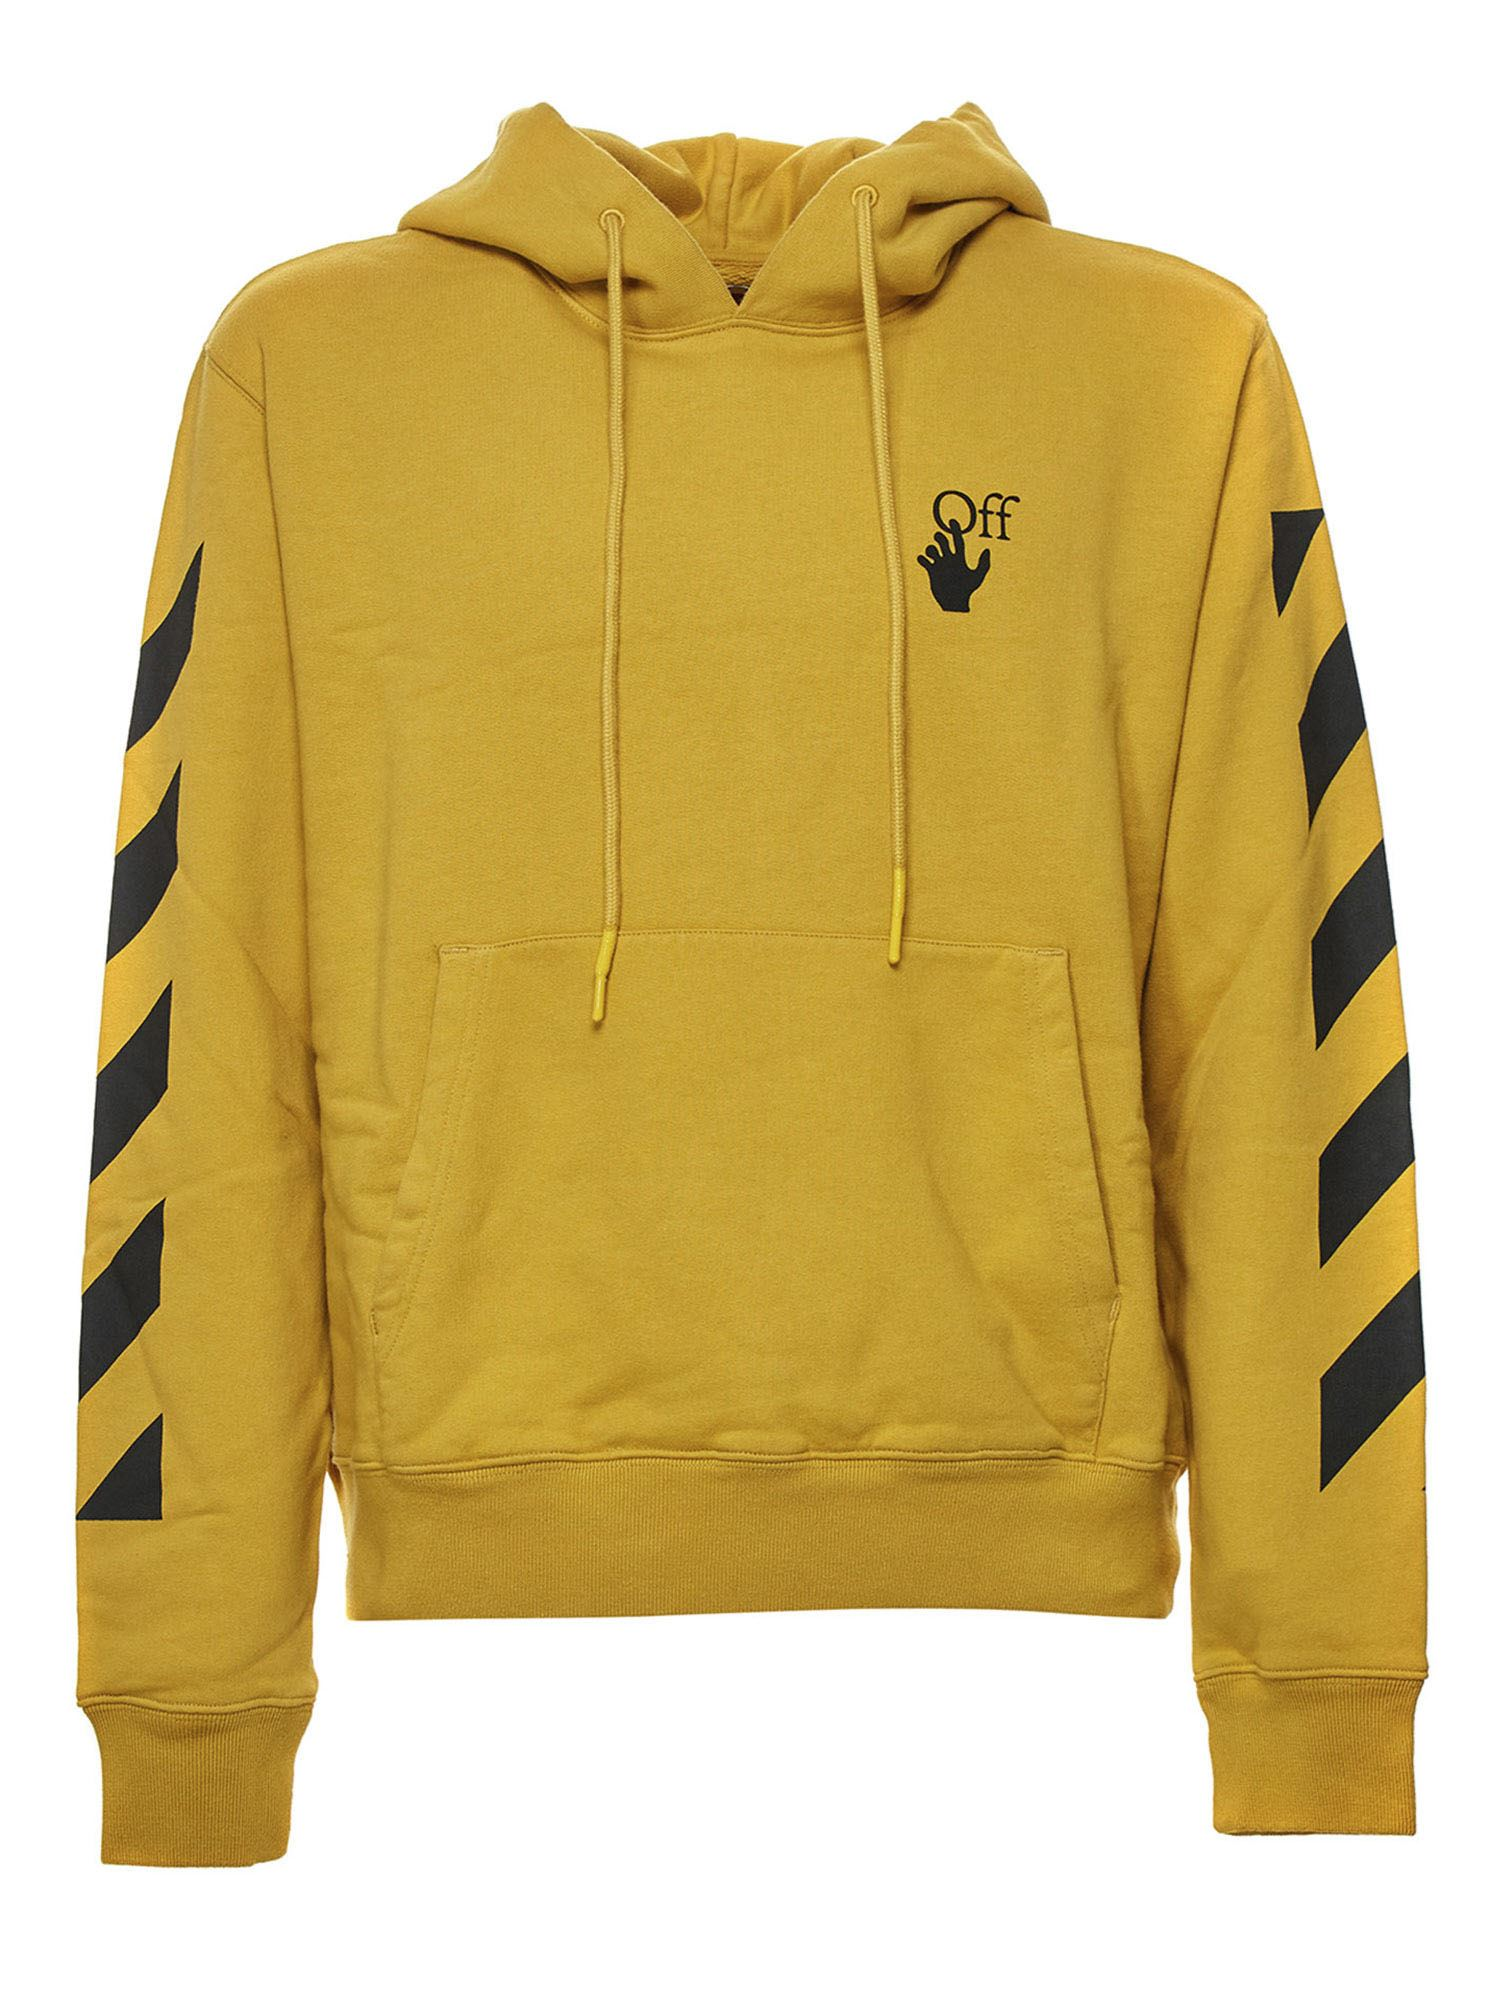 Off-White BRANDED HOODIE IN YELLOW